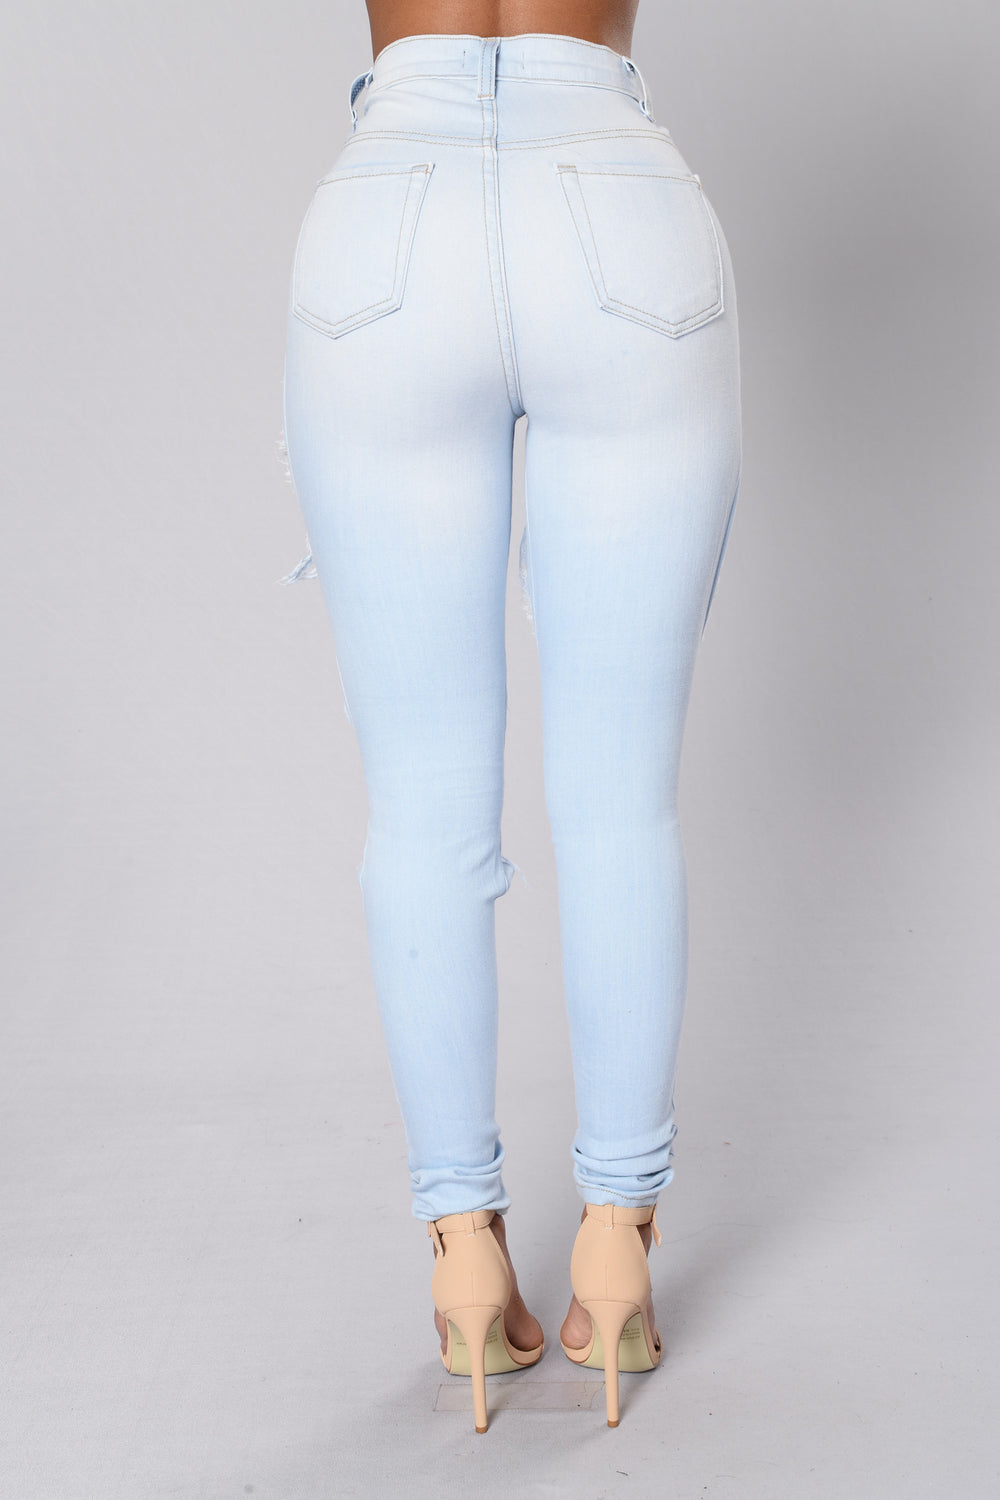 Find great deals on eBay for light blue pants. Shop with confidence.